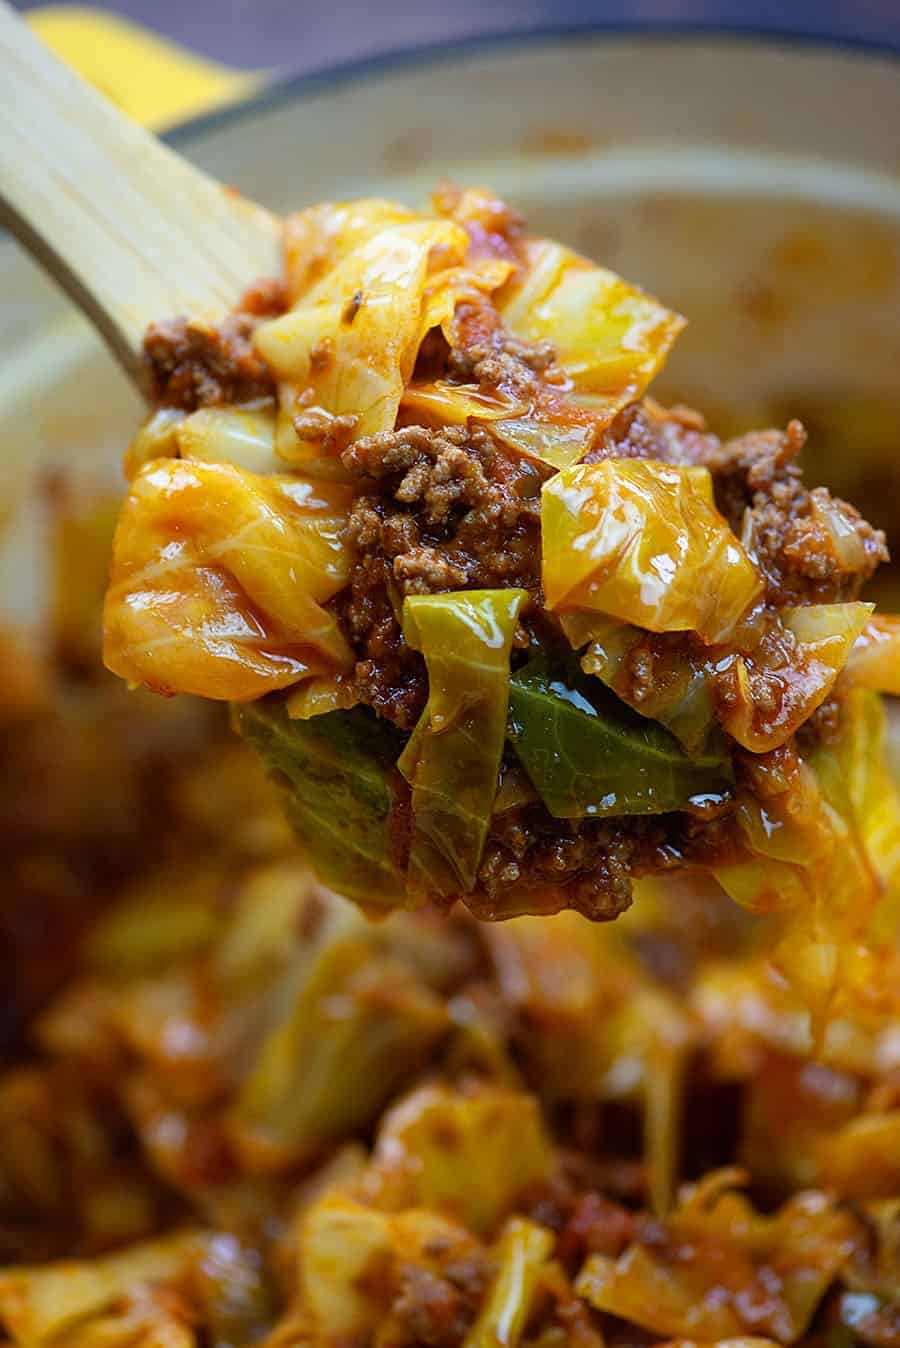 cabbage roll casserole in yellow dish